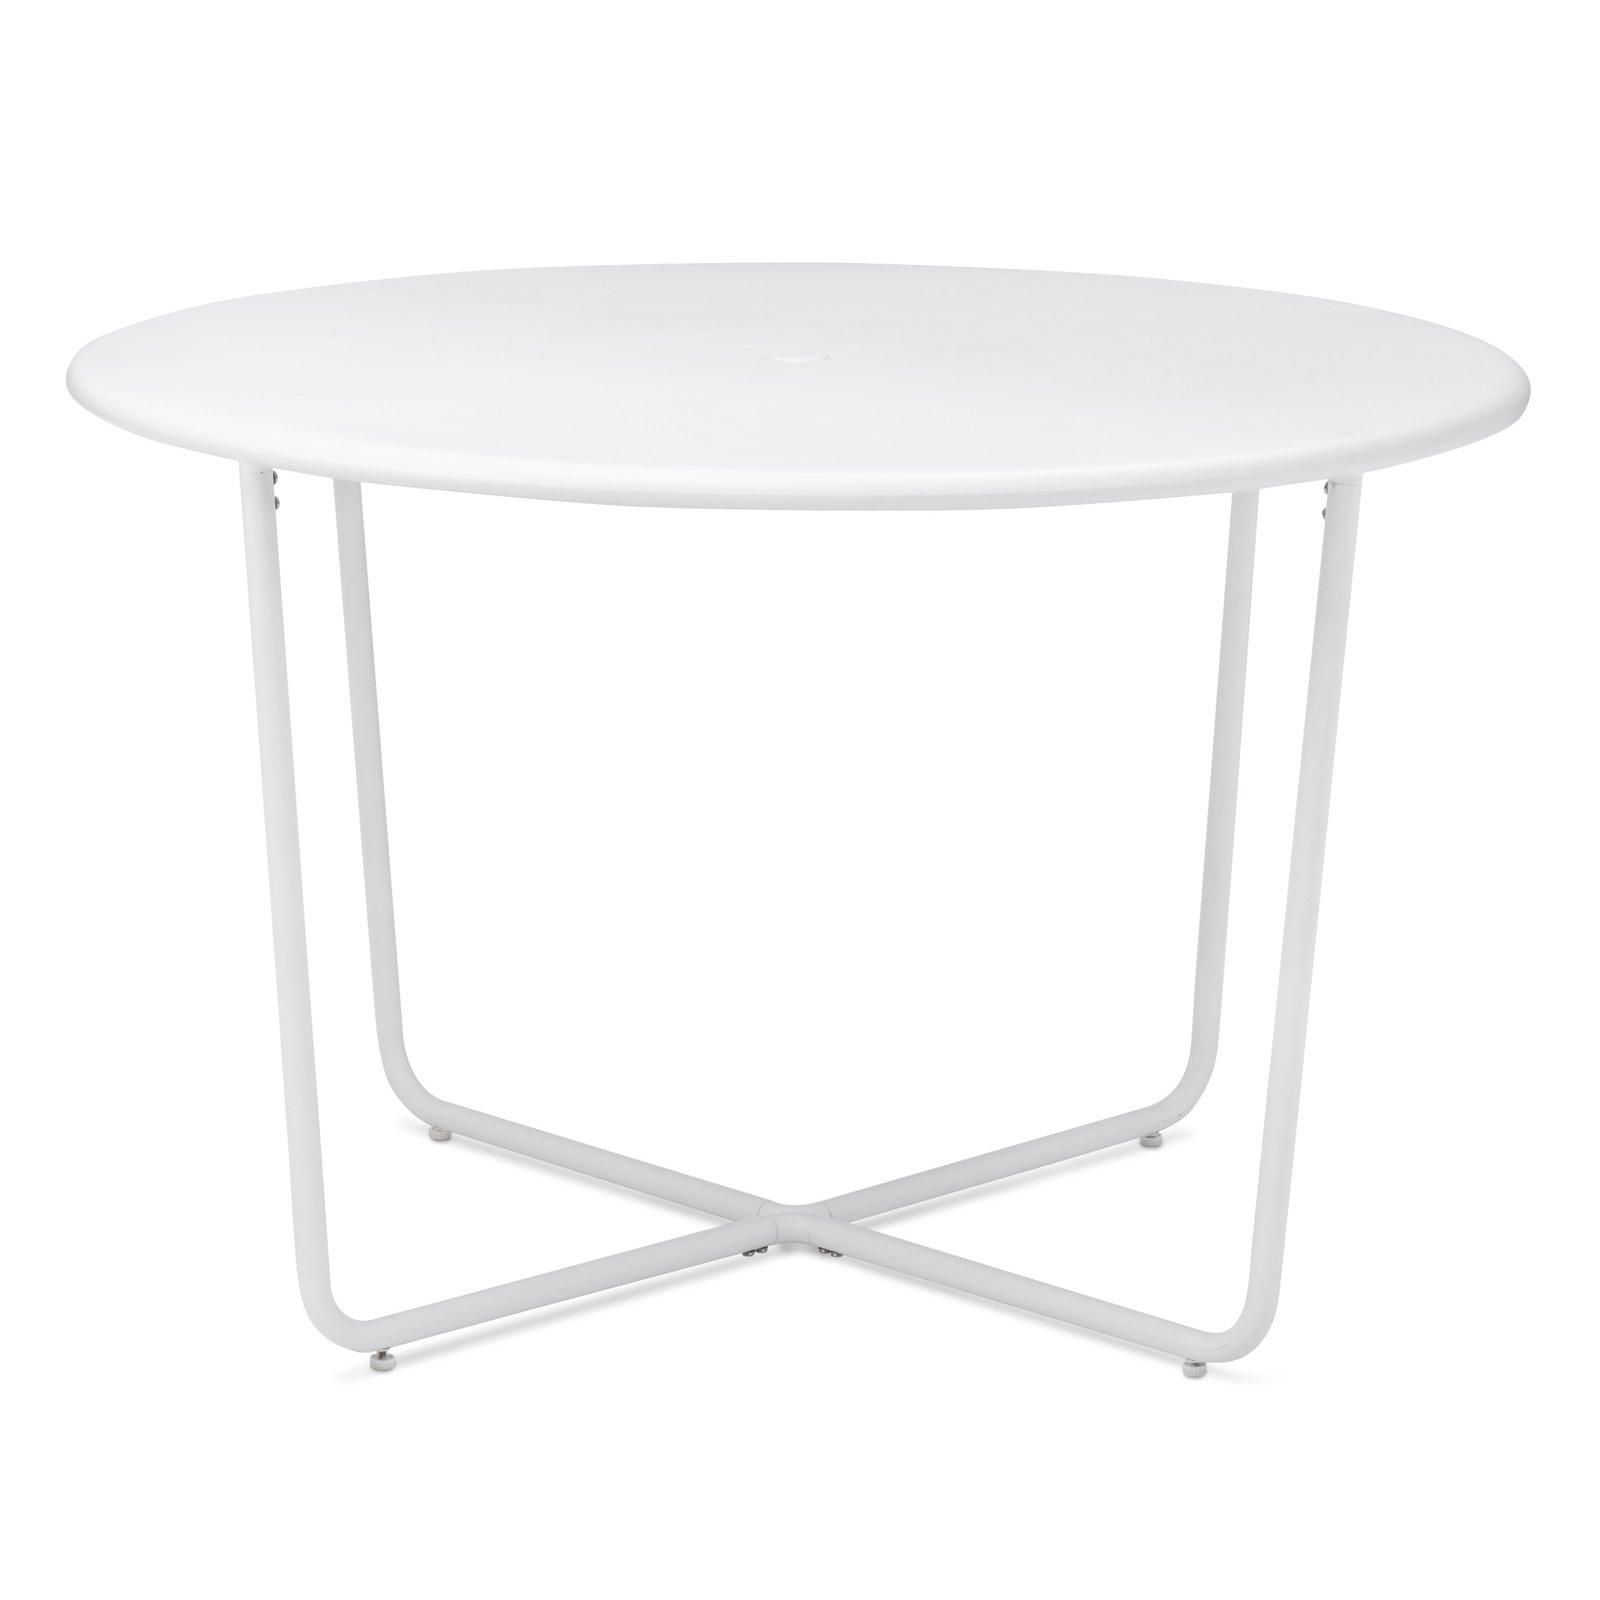 Round Dining Table, $239.99; designed by Chris Deam and Nick Dine for Modern by Dwell Magazine for Target  Modern by Dwell Magazine: Outdoor Collection - Photo 5 of 17